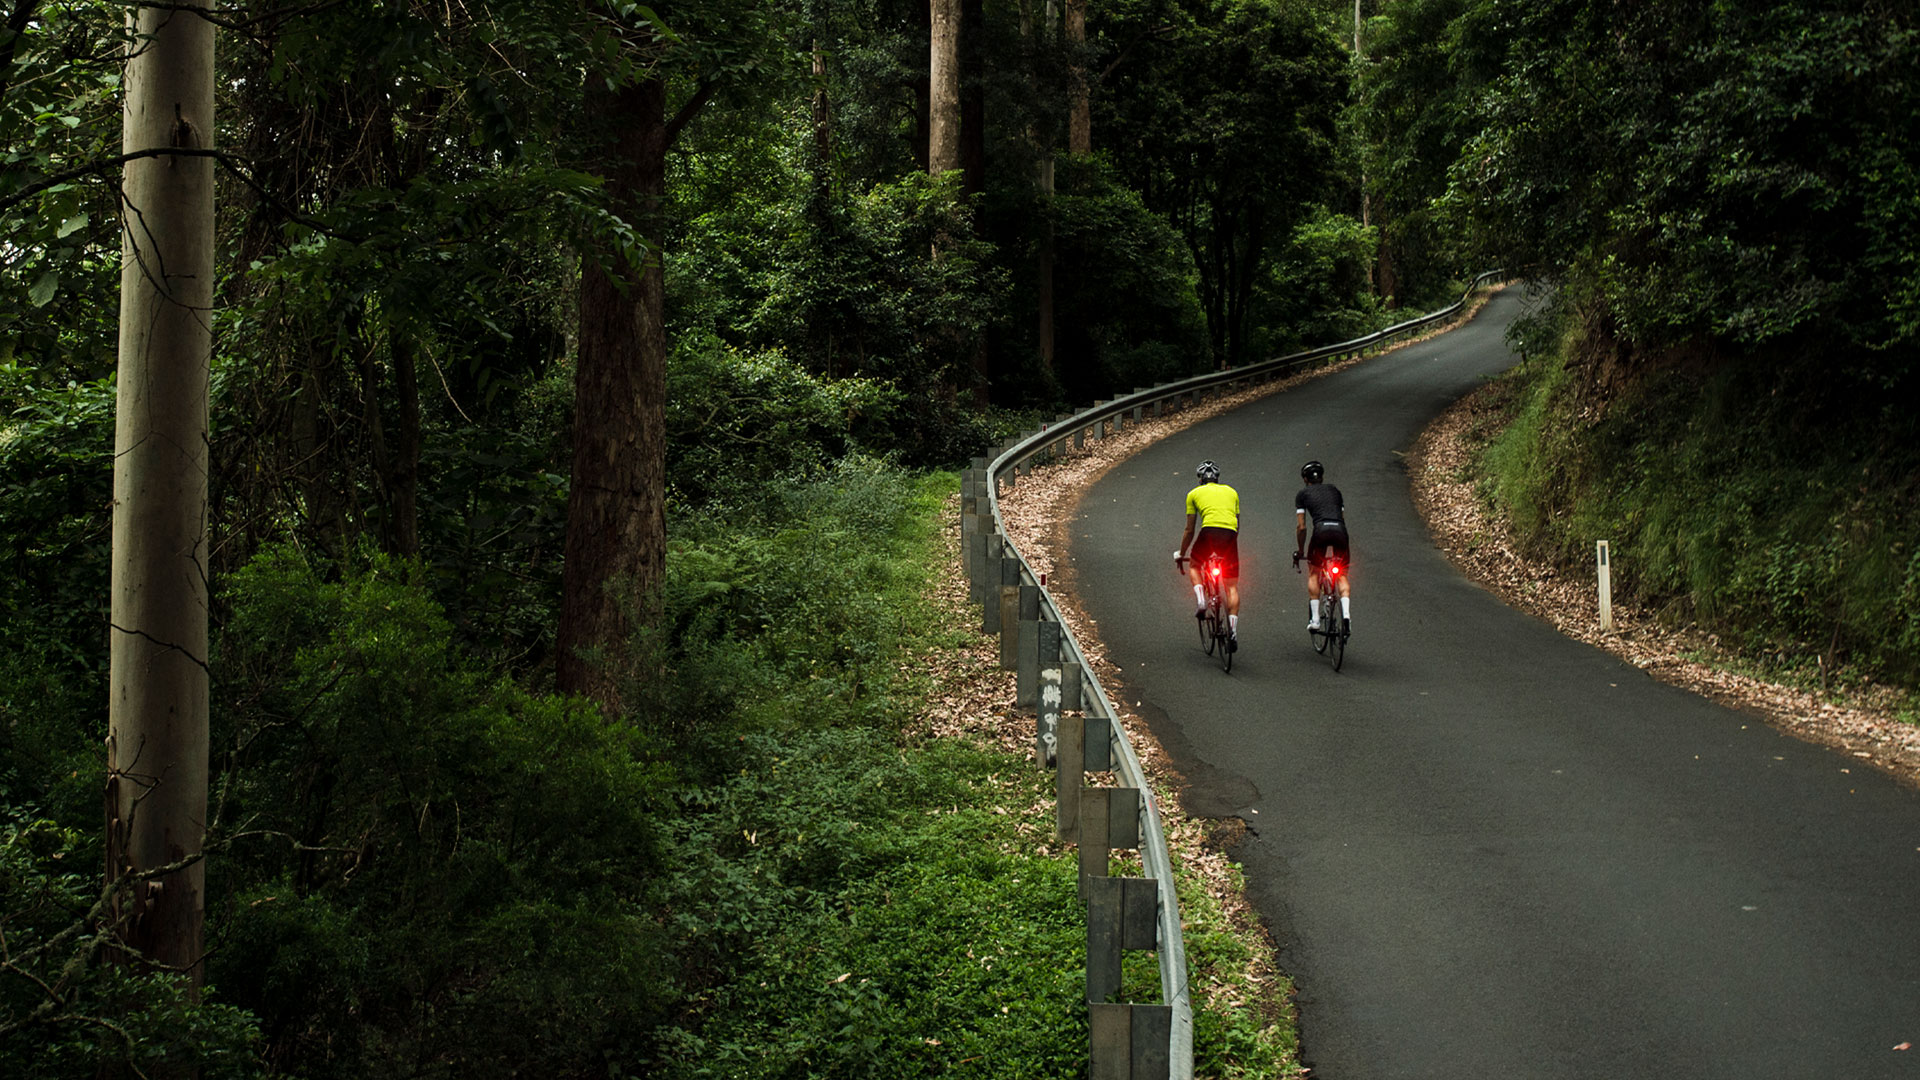 Two men riding with rear lights